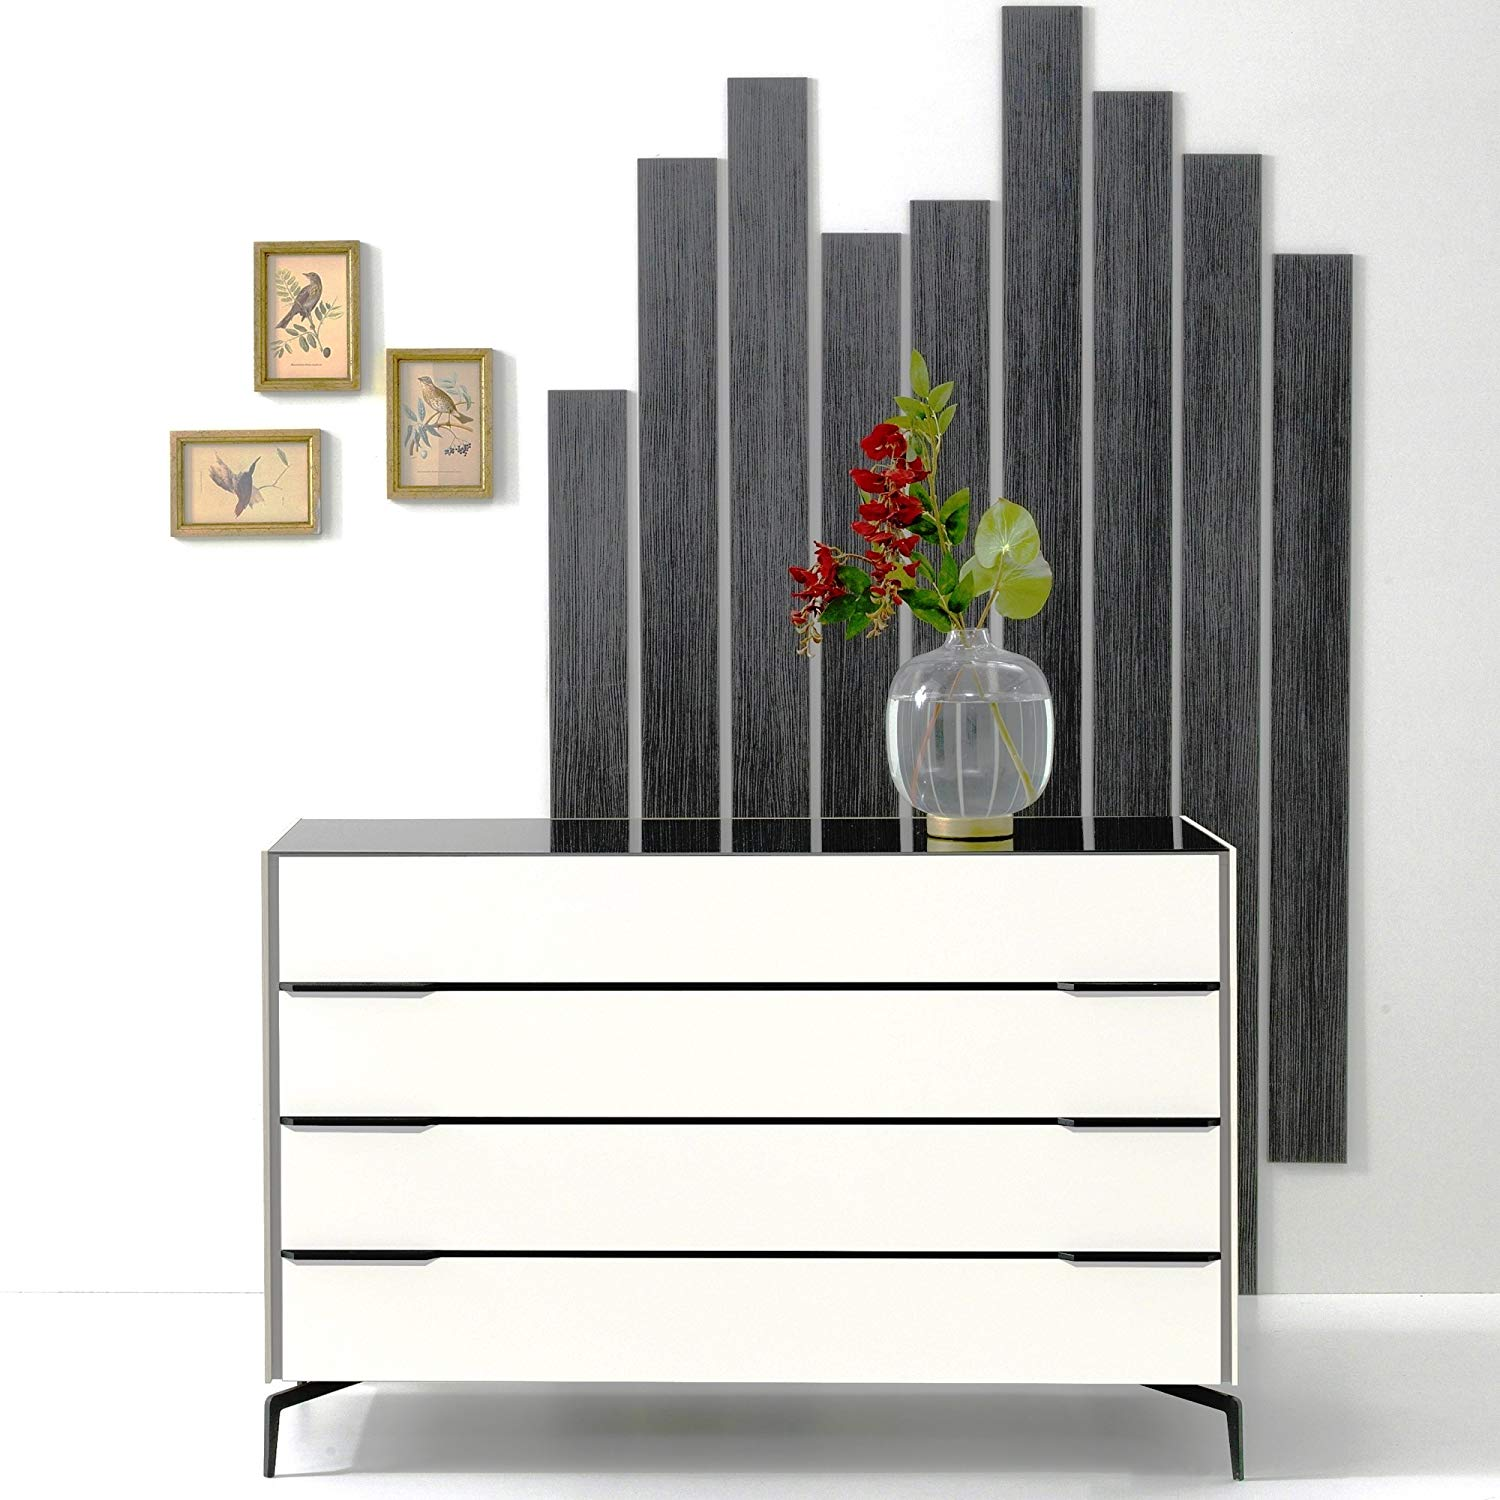 Adam and Illy COR0169 CORA Chest of Drawers, Glam Black/White